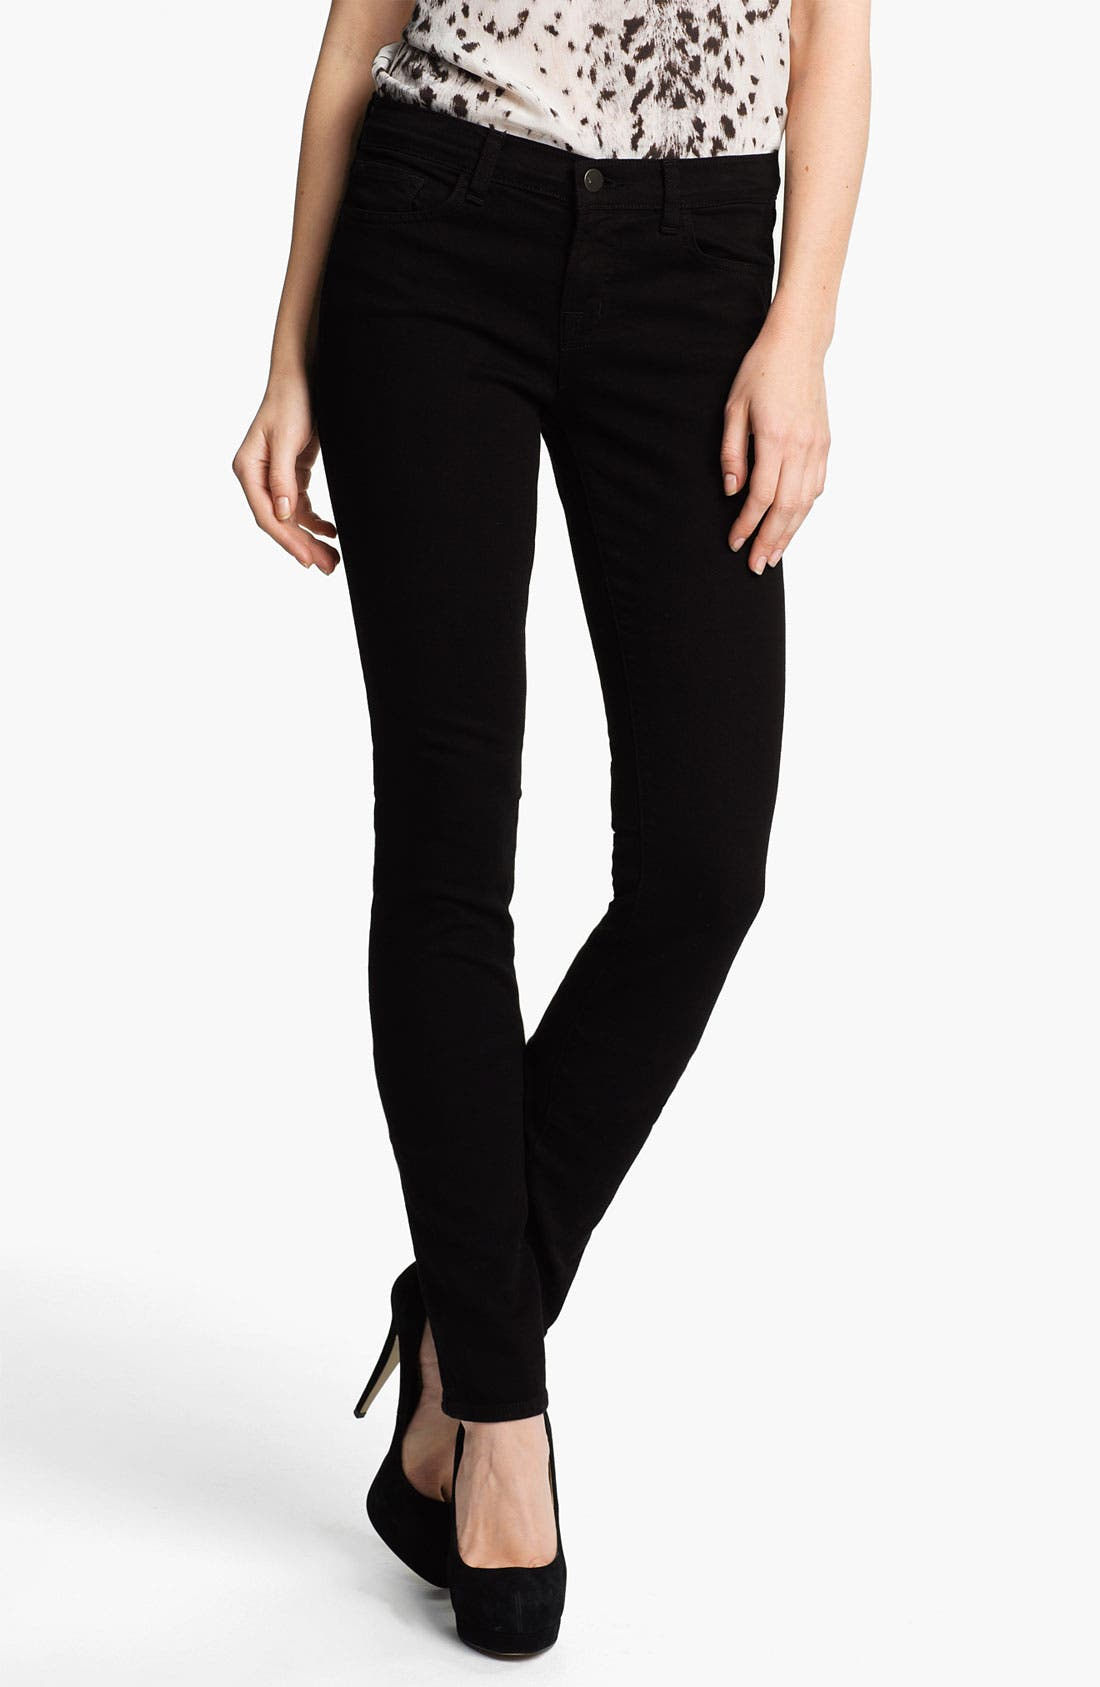 Alternate Image 1 Selected - J Brand 'Pencil Leg' Stretch Jeans (Shadow)